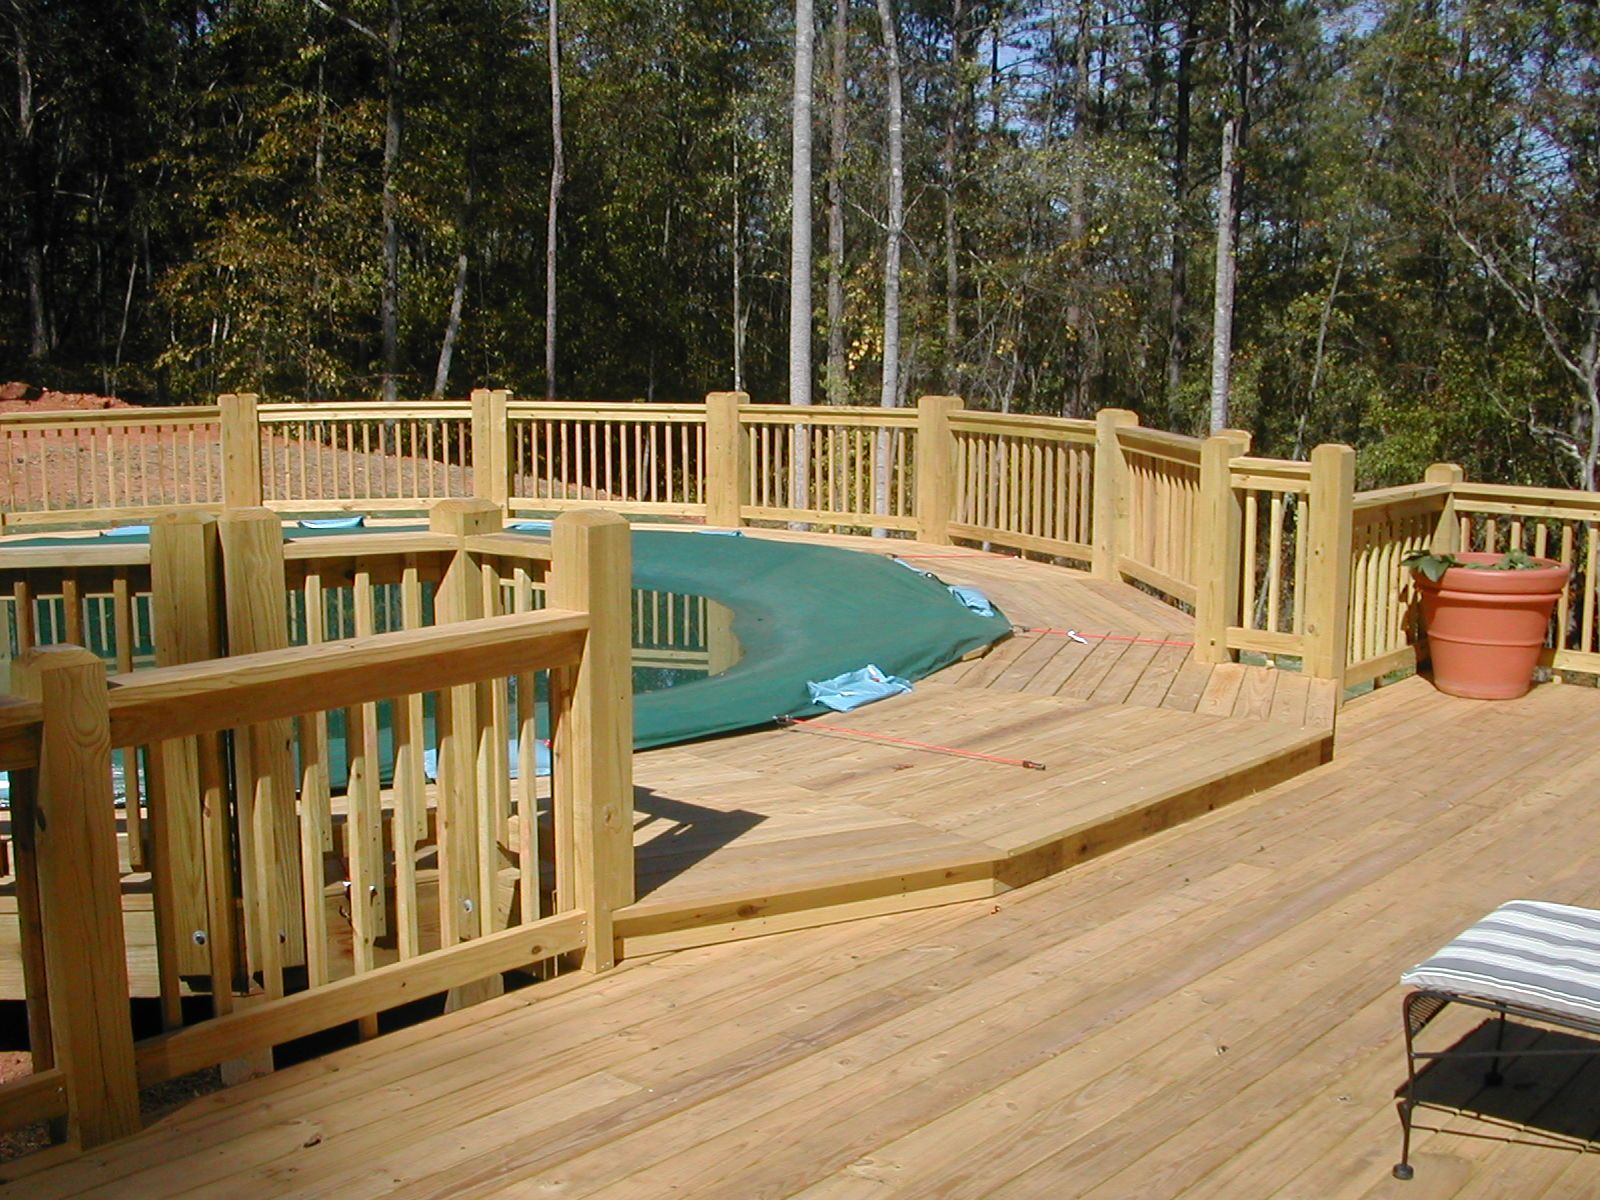 17 Best images about Backyard Ideas on Pinterest | Oval above ground pools,  Wood decks and Backyards